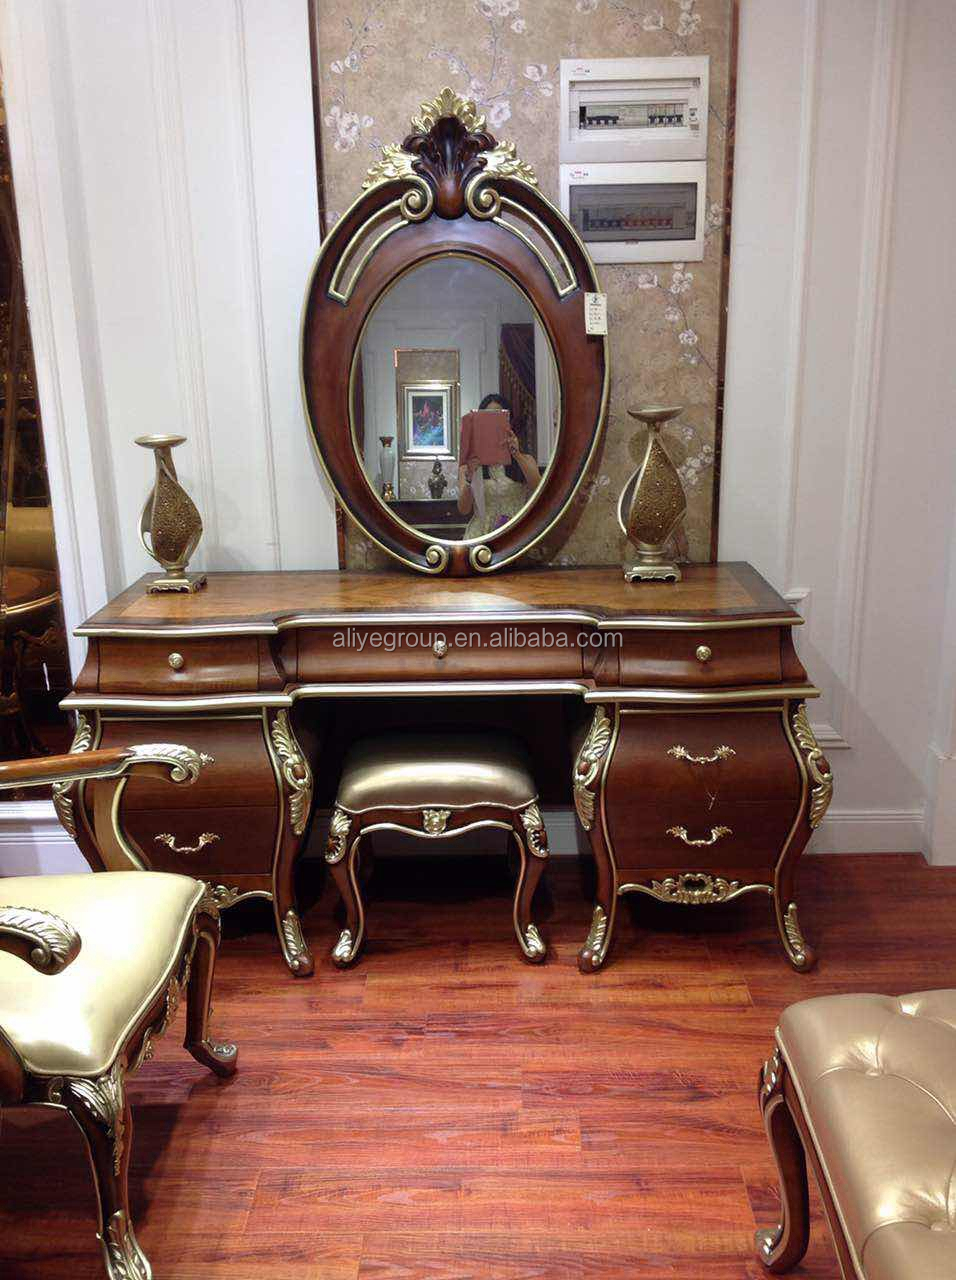 Antique Makeup Vanity Dressing Table Wholesale Large Classic Mirror Dresser Furniture Bedroom With Mirror View Dresser Table Aliye Product Details From Guangdong Luxury Homey Furniture And Interior Decoration Co Ltd On Alibaba Com